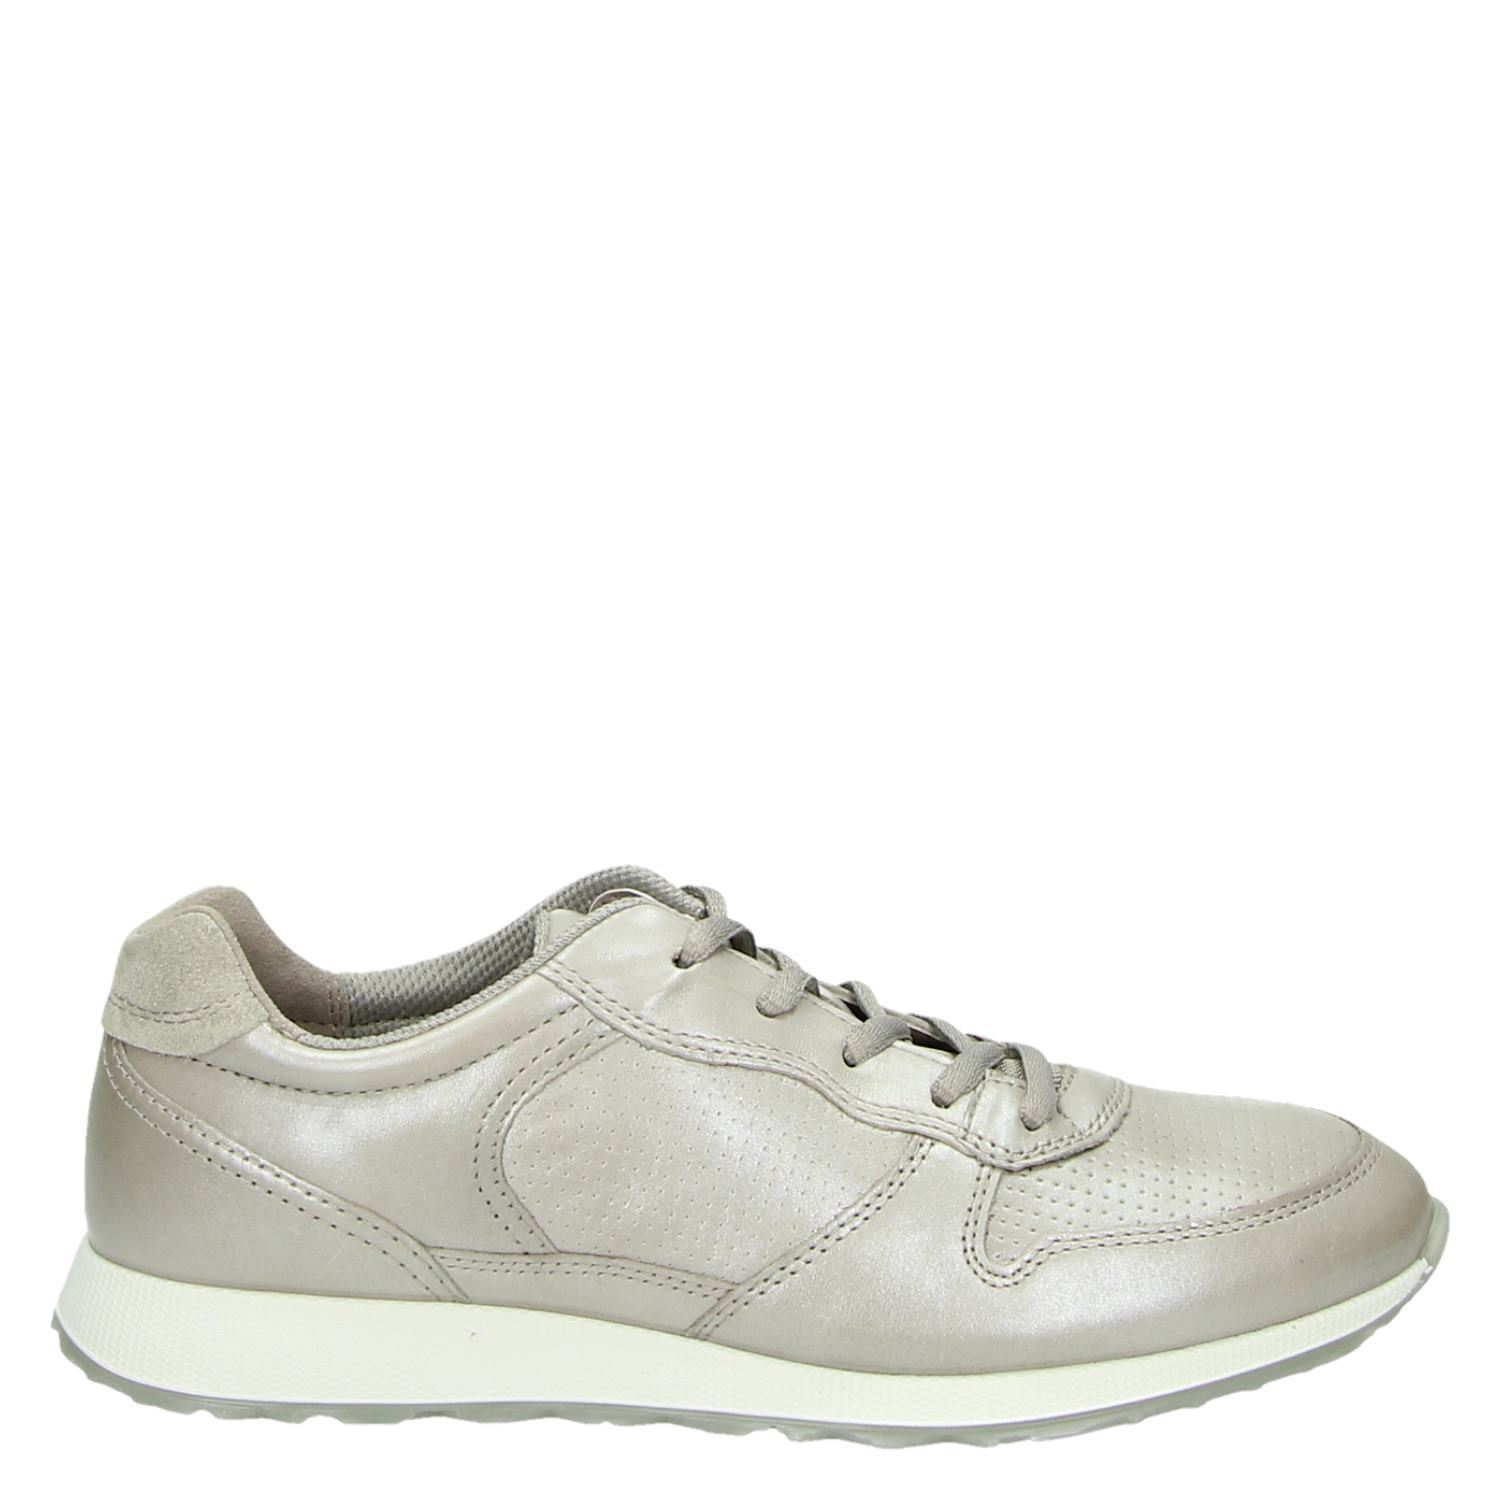 Ecco Sneak Esprit Baskets Lage R46mdk